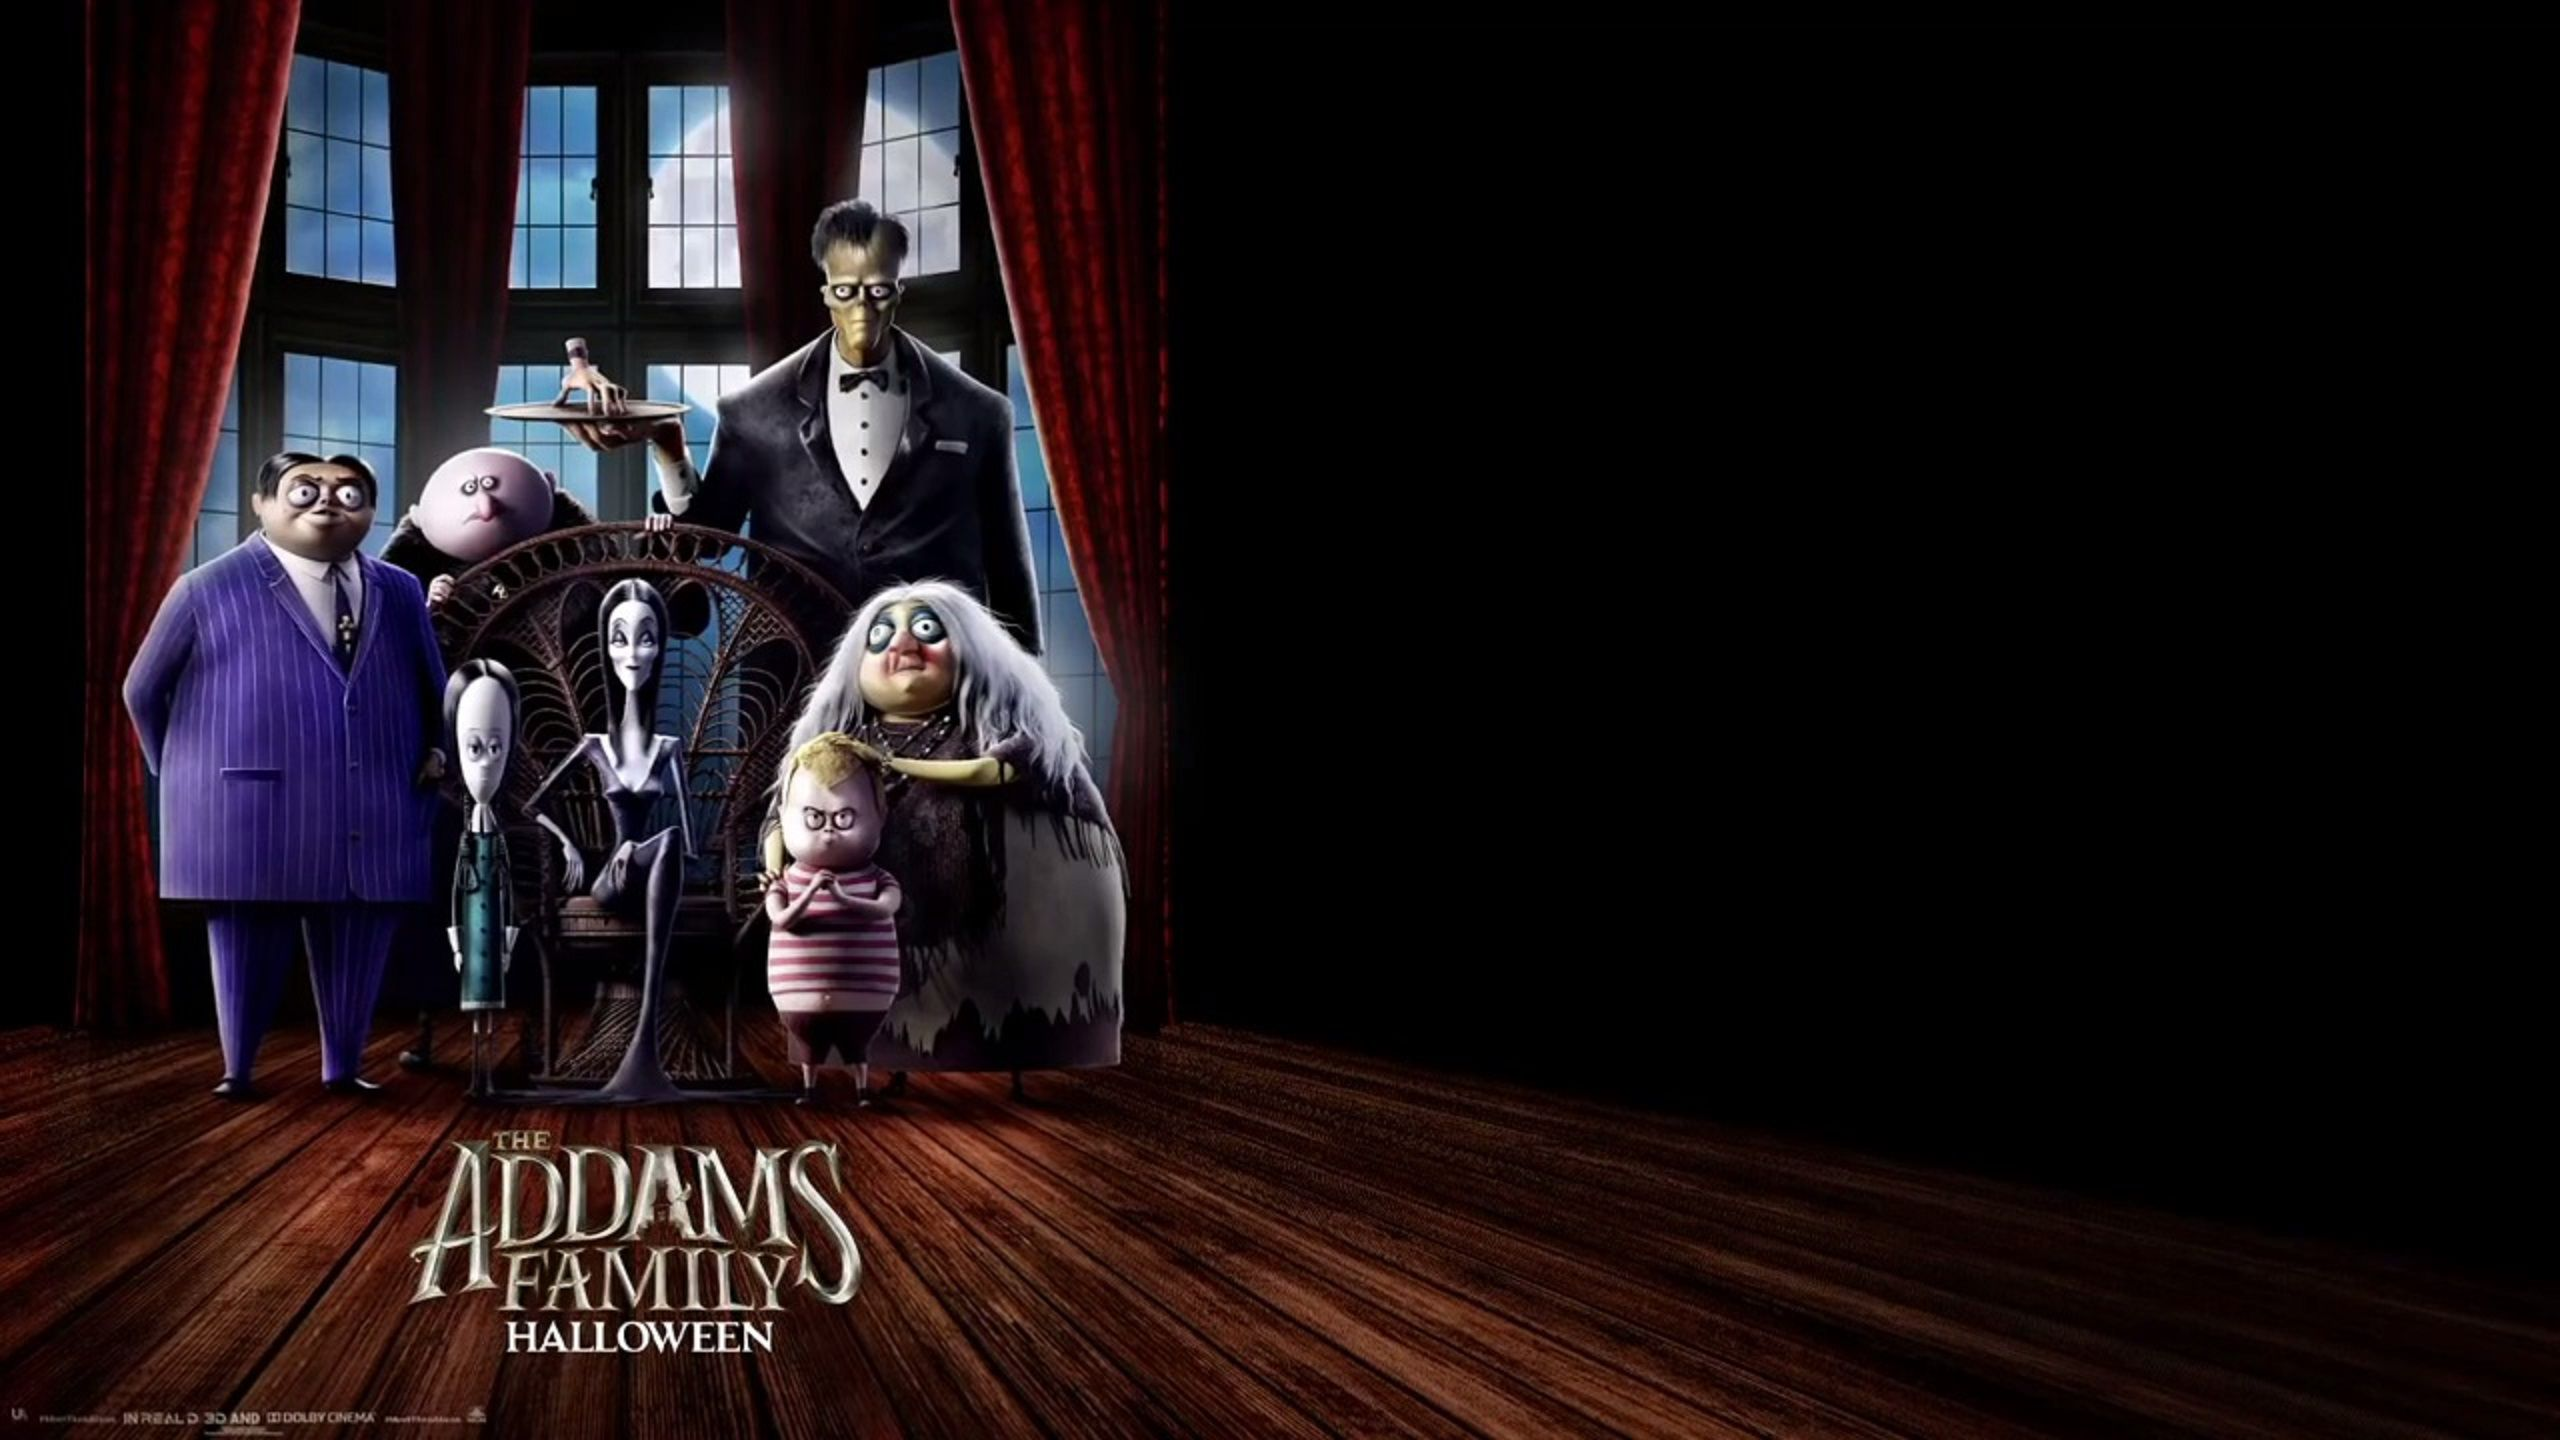 The Addams Family (animated 2019) - poster and wallpaper